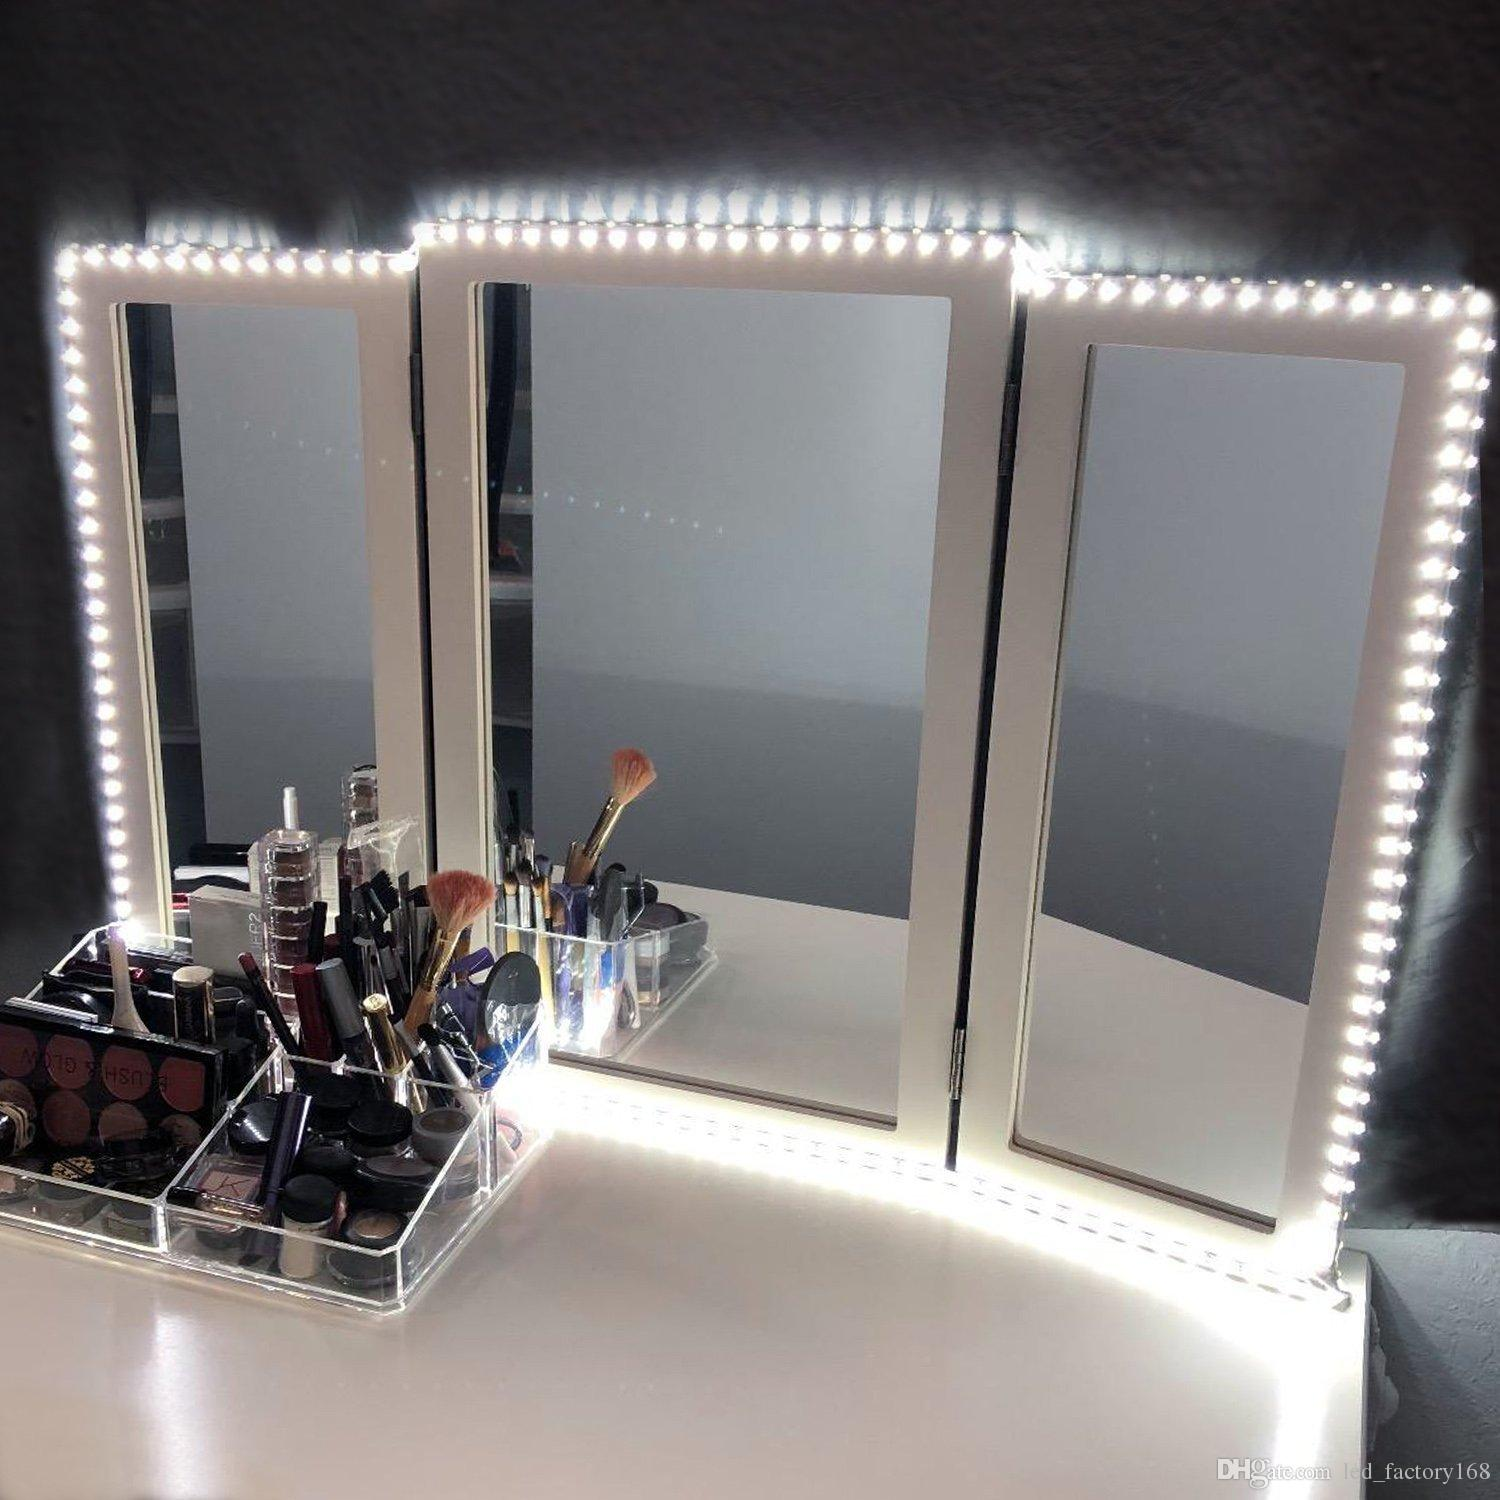 Hollywood style led vanity mirror lights kit for makeup dressing hollywood style led vanity mirror lights kit for makeup dressing table vanity set 11ft flexible led light strip 6000k daylight white with di hollywood aloadofball